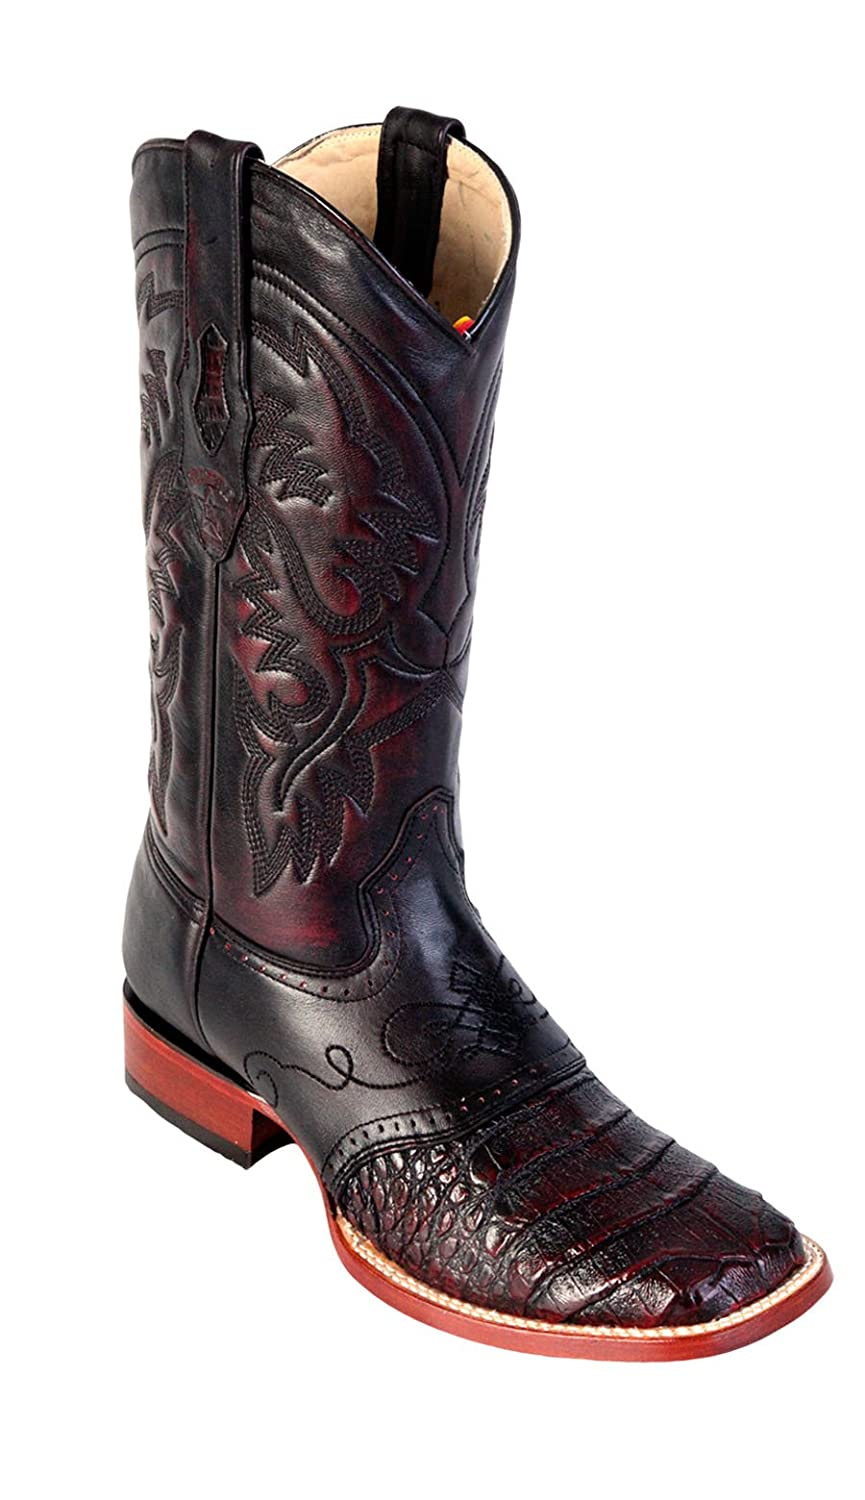 Men's Wide Square Toe Black Genuine Leather Caiman Belly w/ Saddle Skin Western Boots